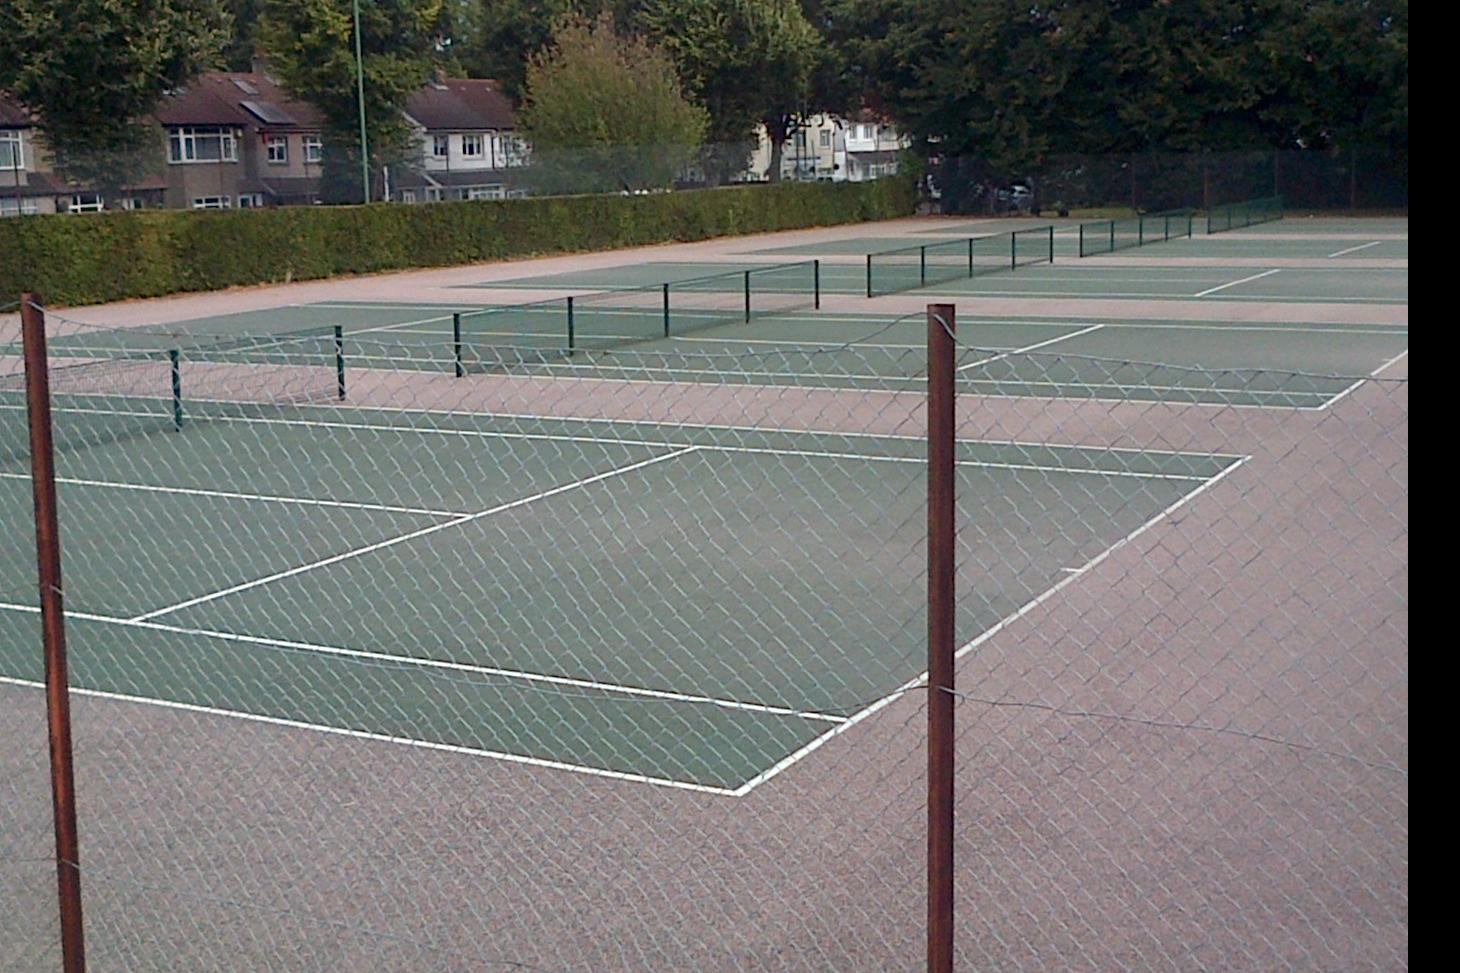 Carshalton Park Outdoor | Hard (macadam) tennis court